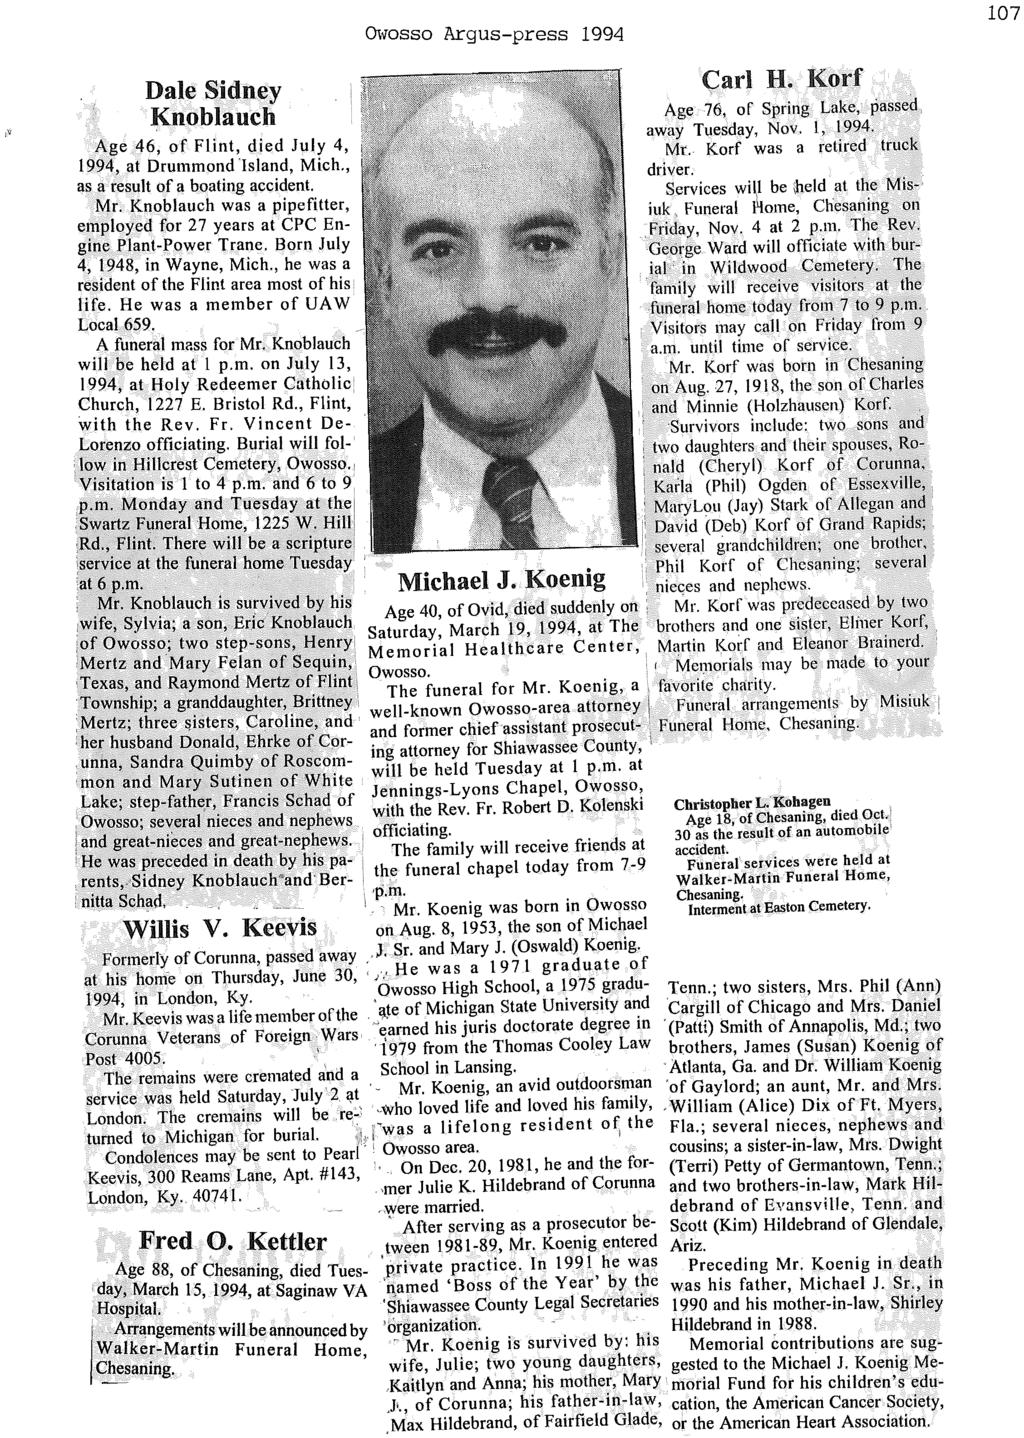 ~vosso Argus-press 1994 107 Dale Sidney Knoblauch Carl H. Korf.. Age 76, of Spring Lake, passed away Tuesday, Nov. 1, 1994. Age 46, of Flint, died July 4, Mr.